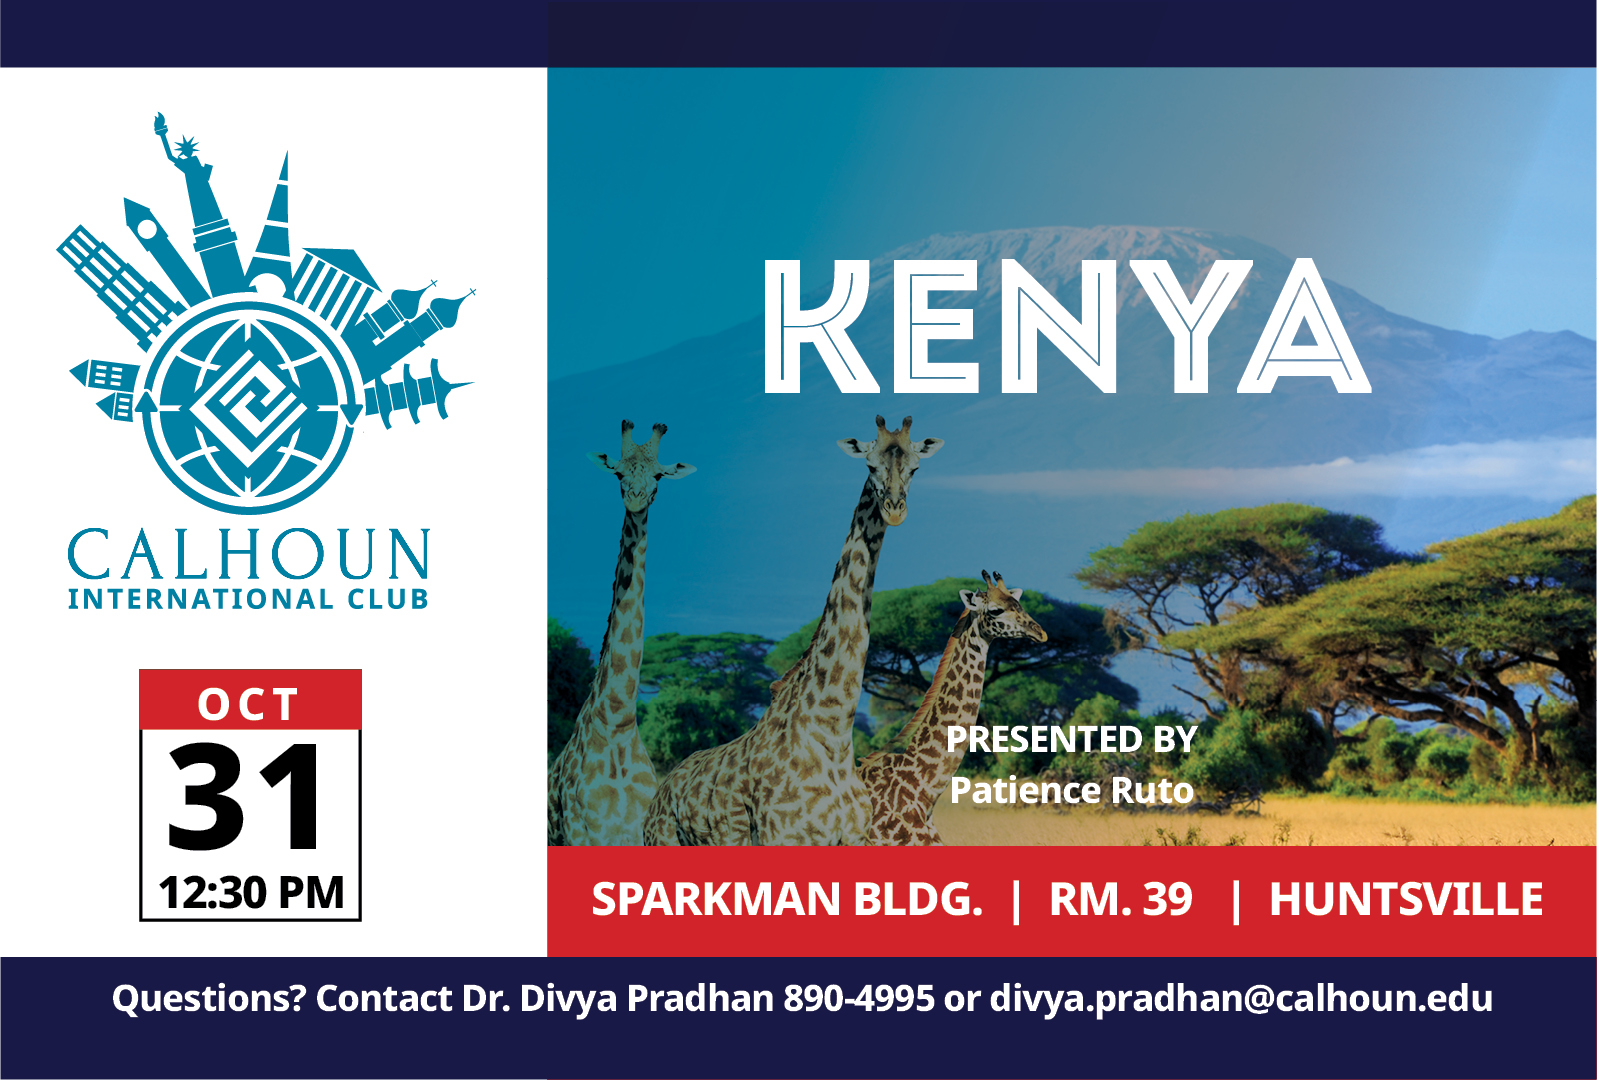 Kenya Calhoun International Club Oct 31 12:30 PM presented by Patience Ruto Sparkman Bldg. Rm. 39 Huntsville Campus. Questions? Contact Dr. Divya Pradhan 890-4995 or divya.pradhan@calhoun.edu